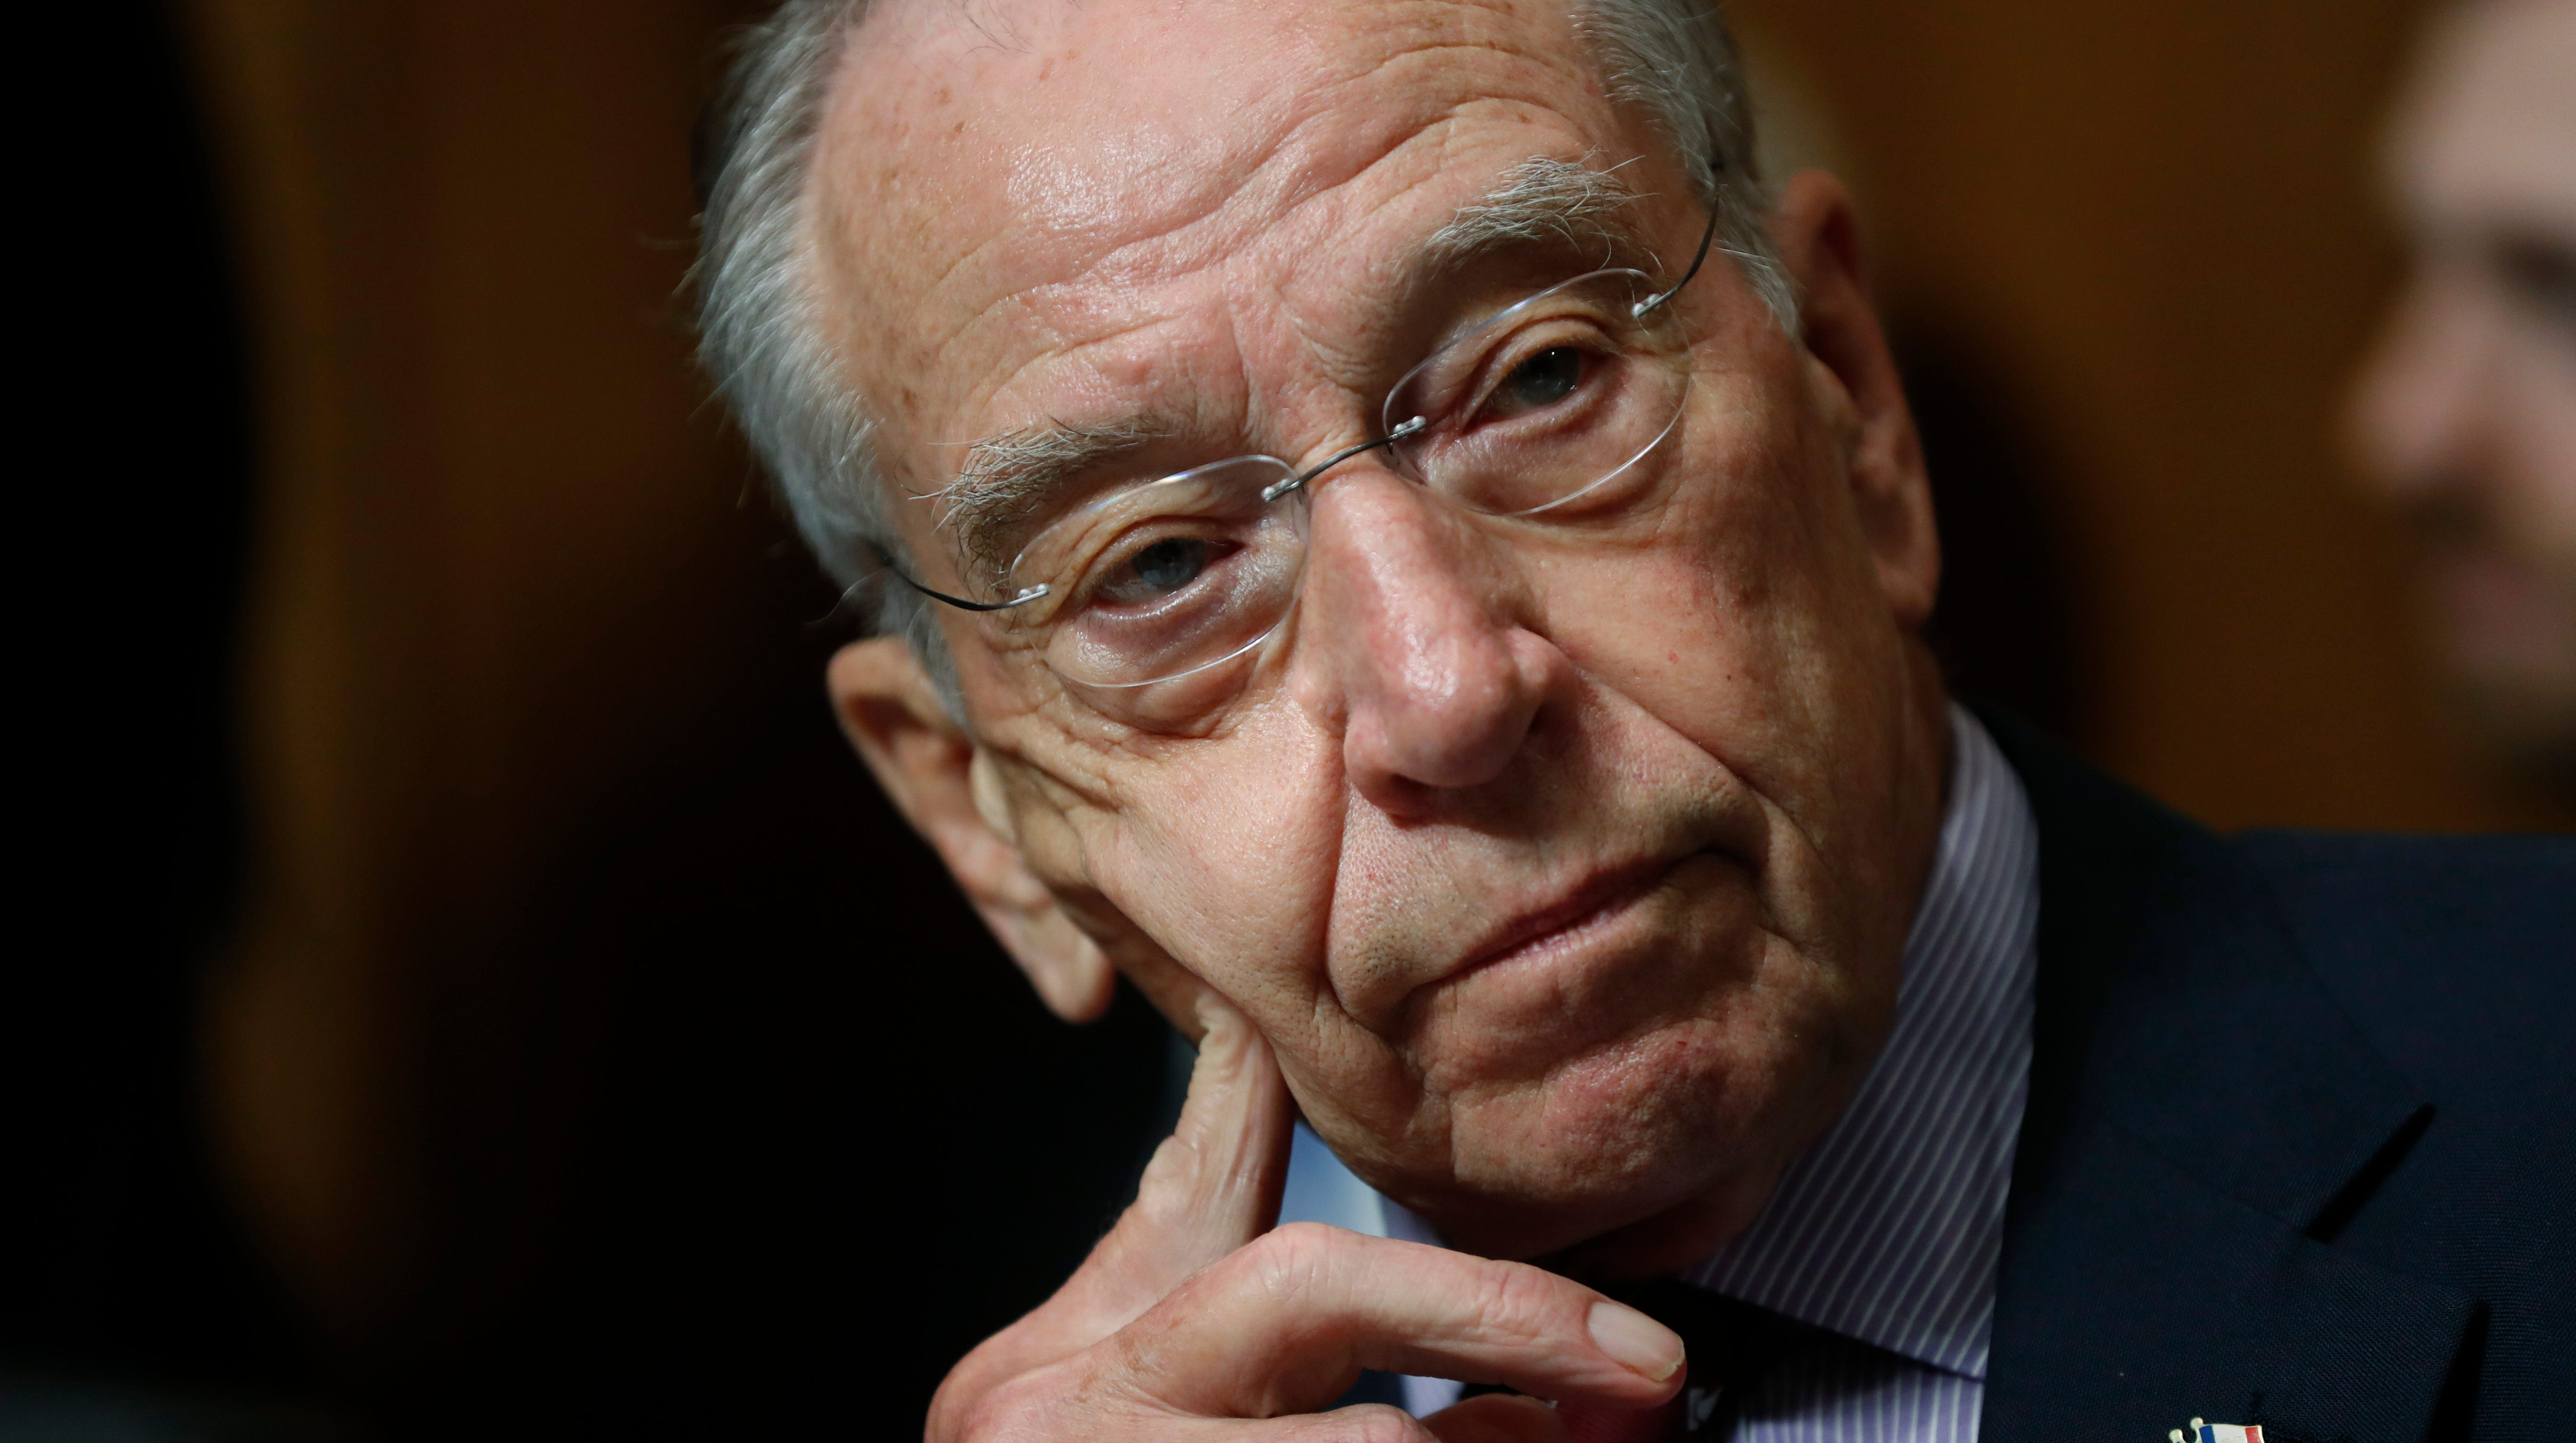 Senate Judiciary Committee Chairman Chuck Grassley, R-Iowa, during a meeting on Capitol Hill.